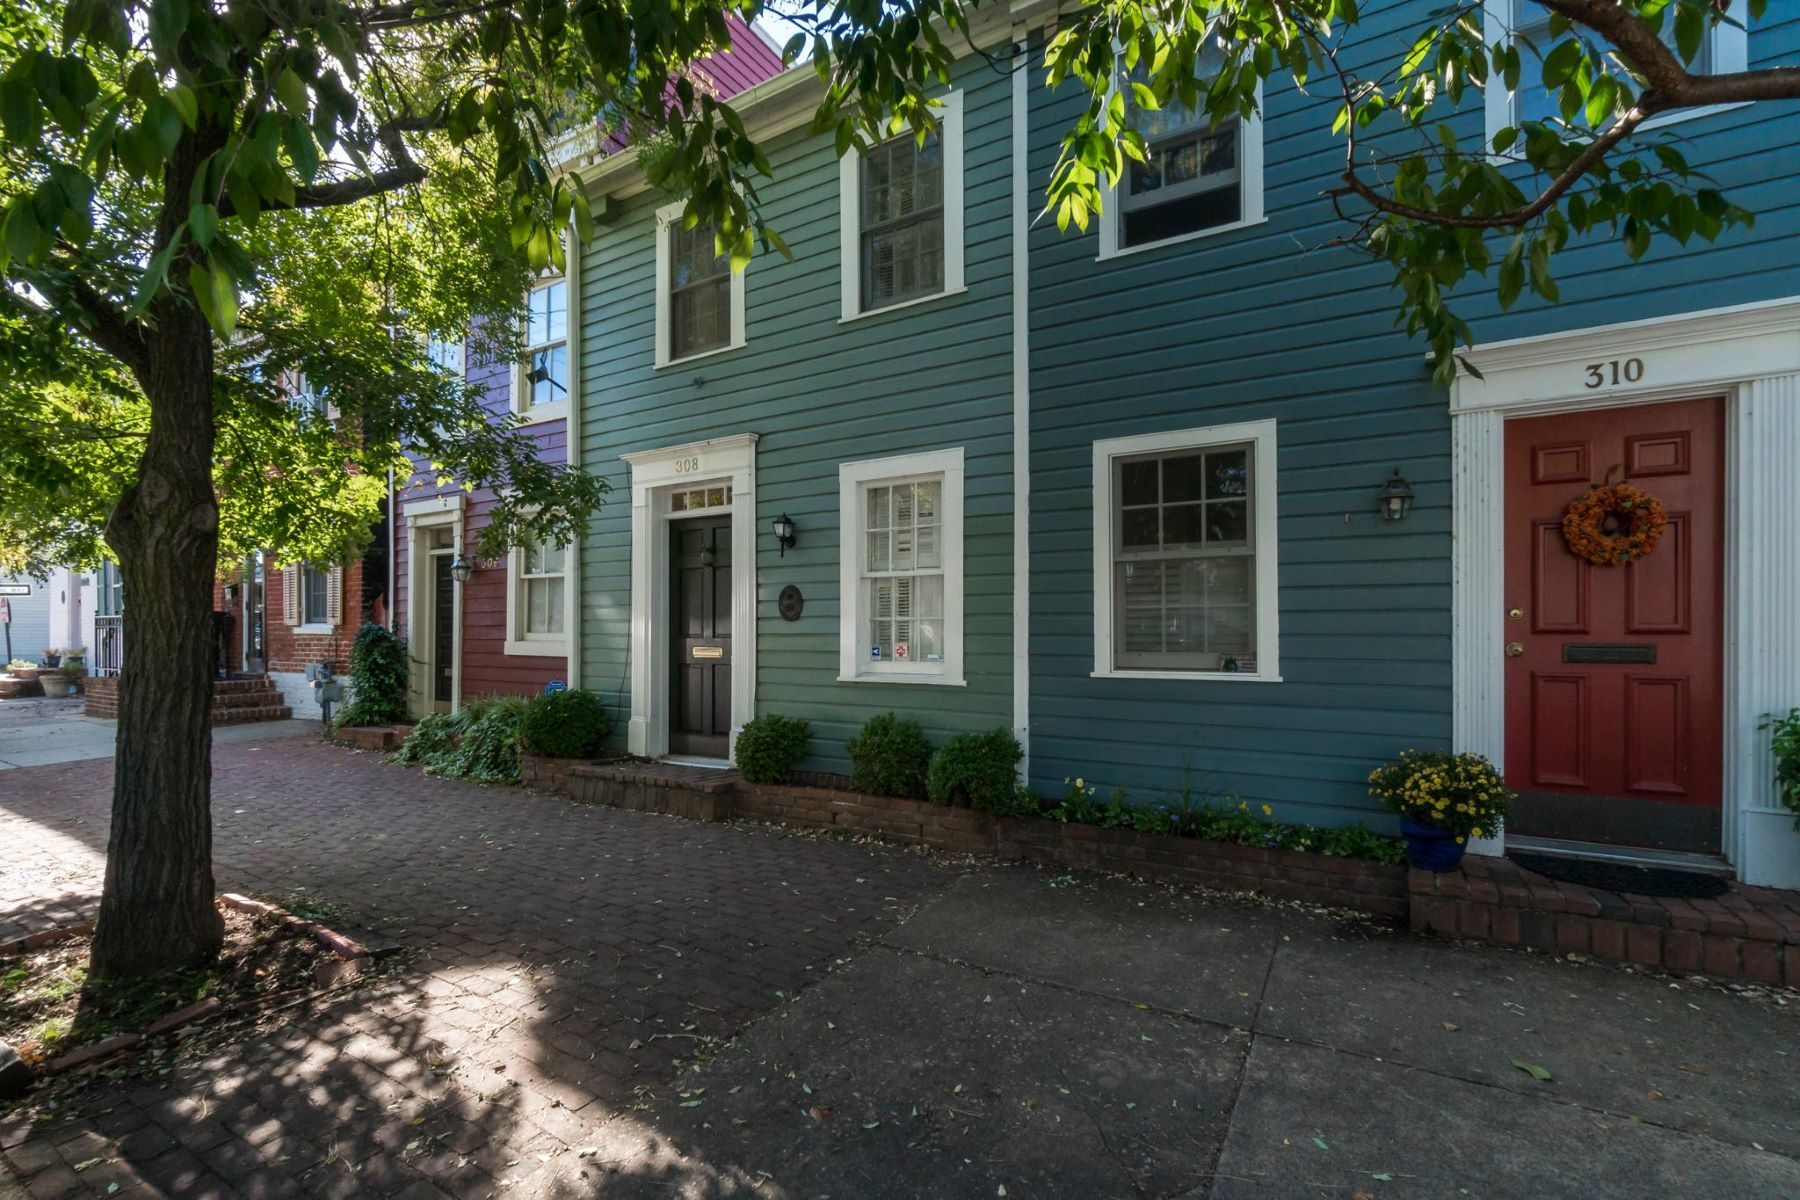 Single Family Home for Rent at 308 Alfred St N 308 Alfred St N Alexandria, Virginia 22314 United States